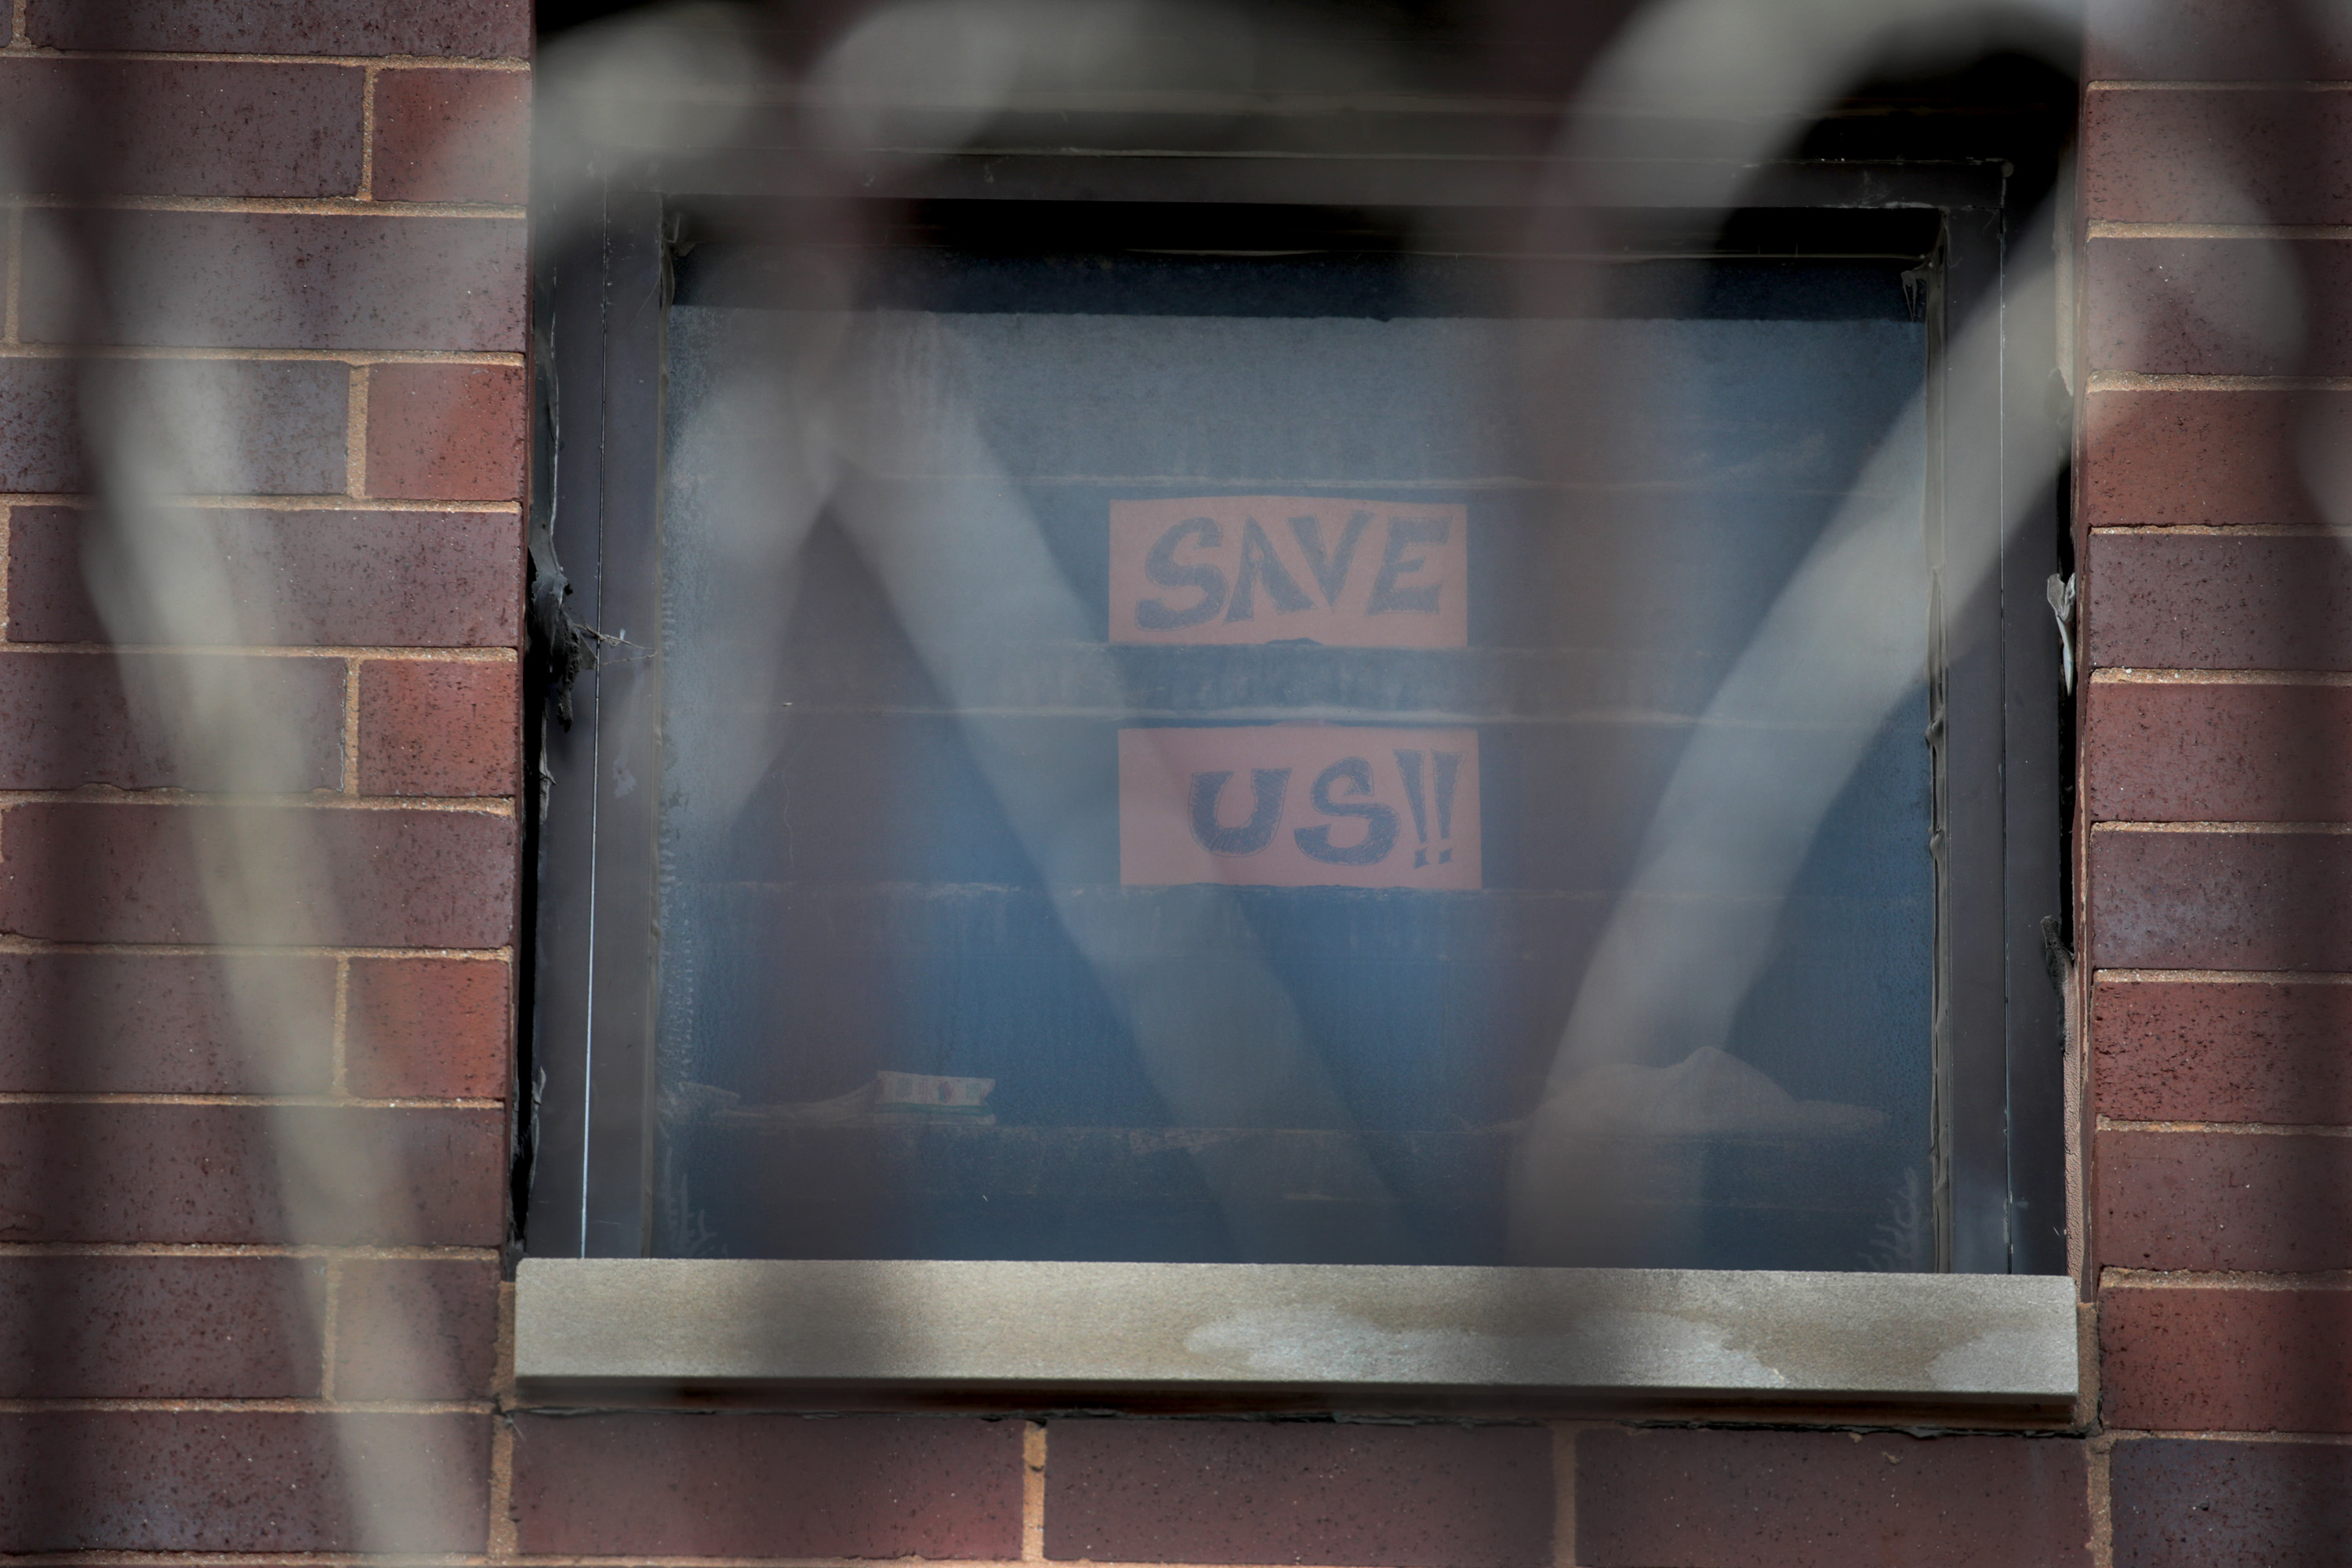 A sign pleading for help hangs in a window at the Cook County jail complex in Chicago, Illinois on April 9, 2020.